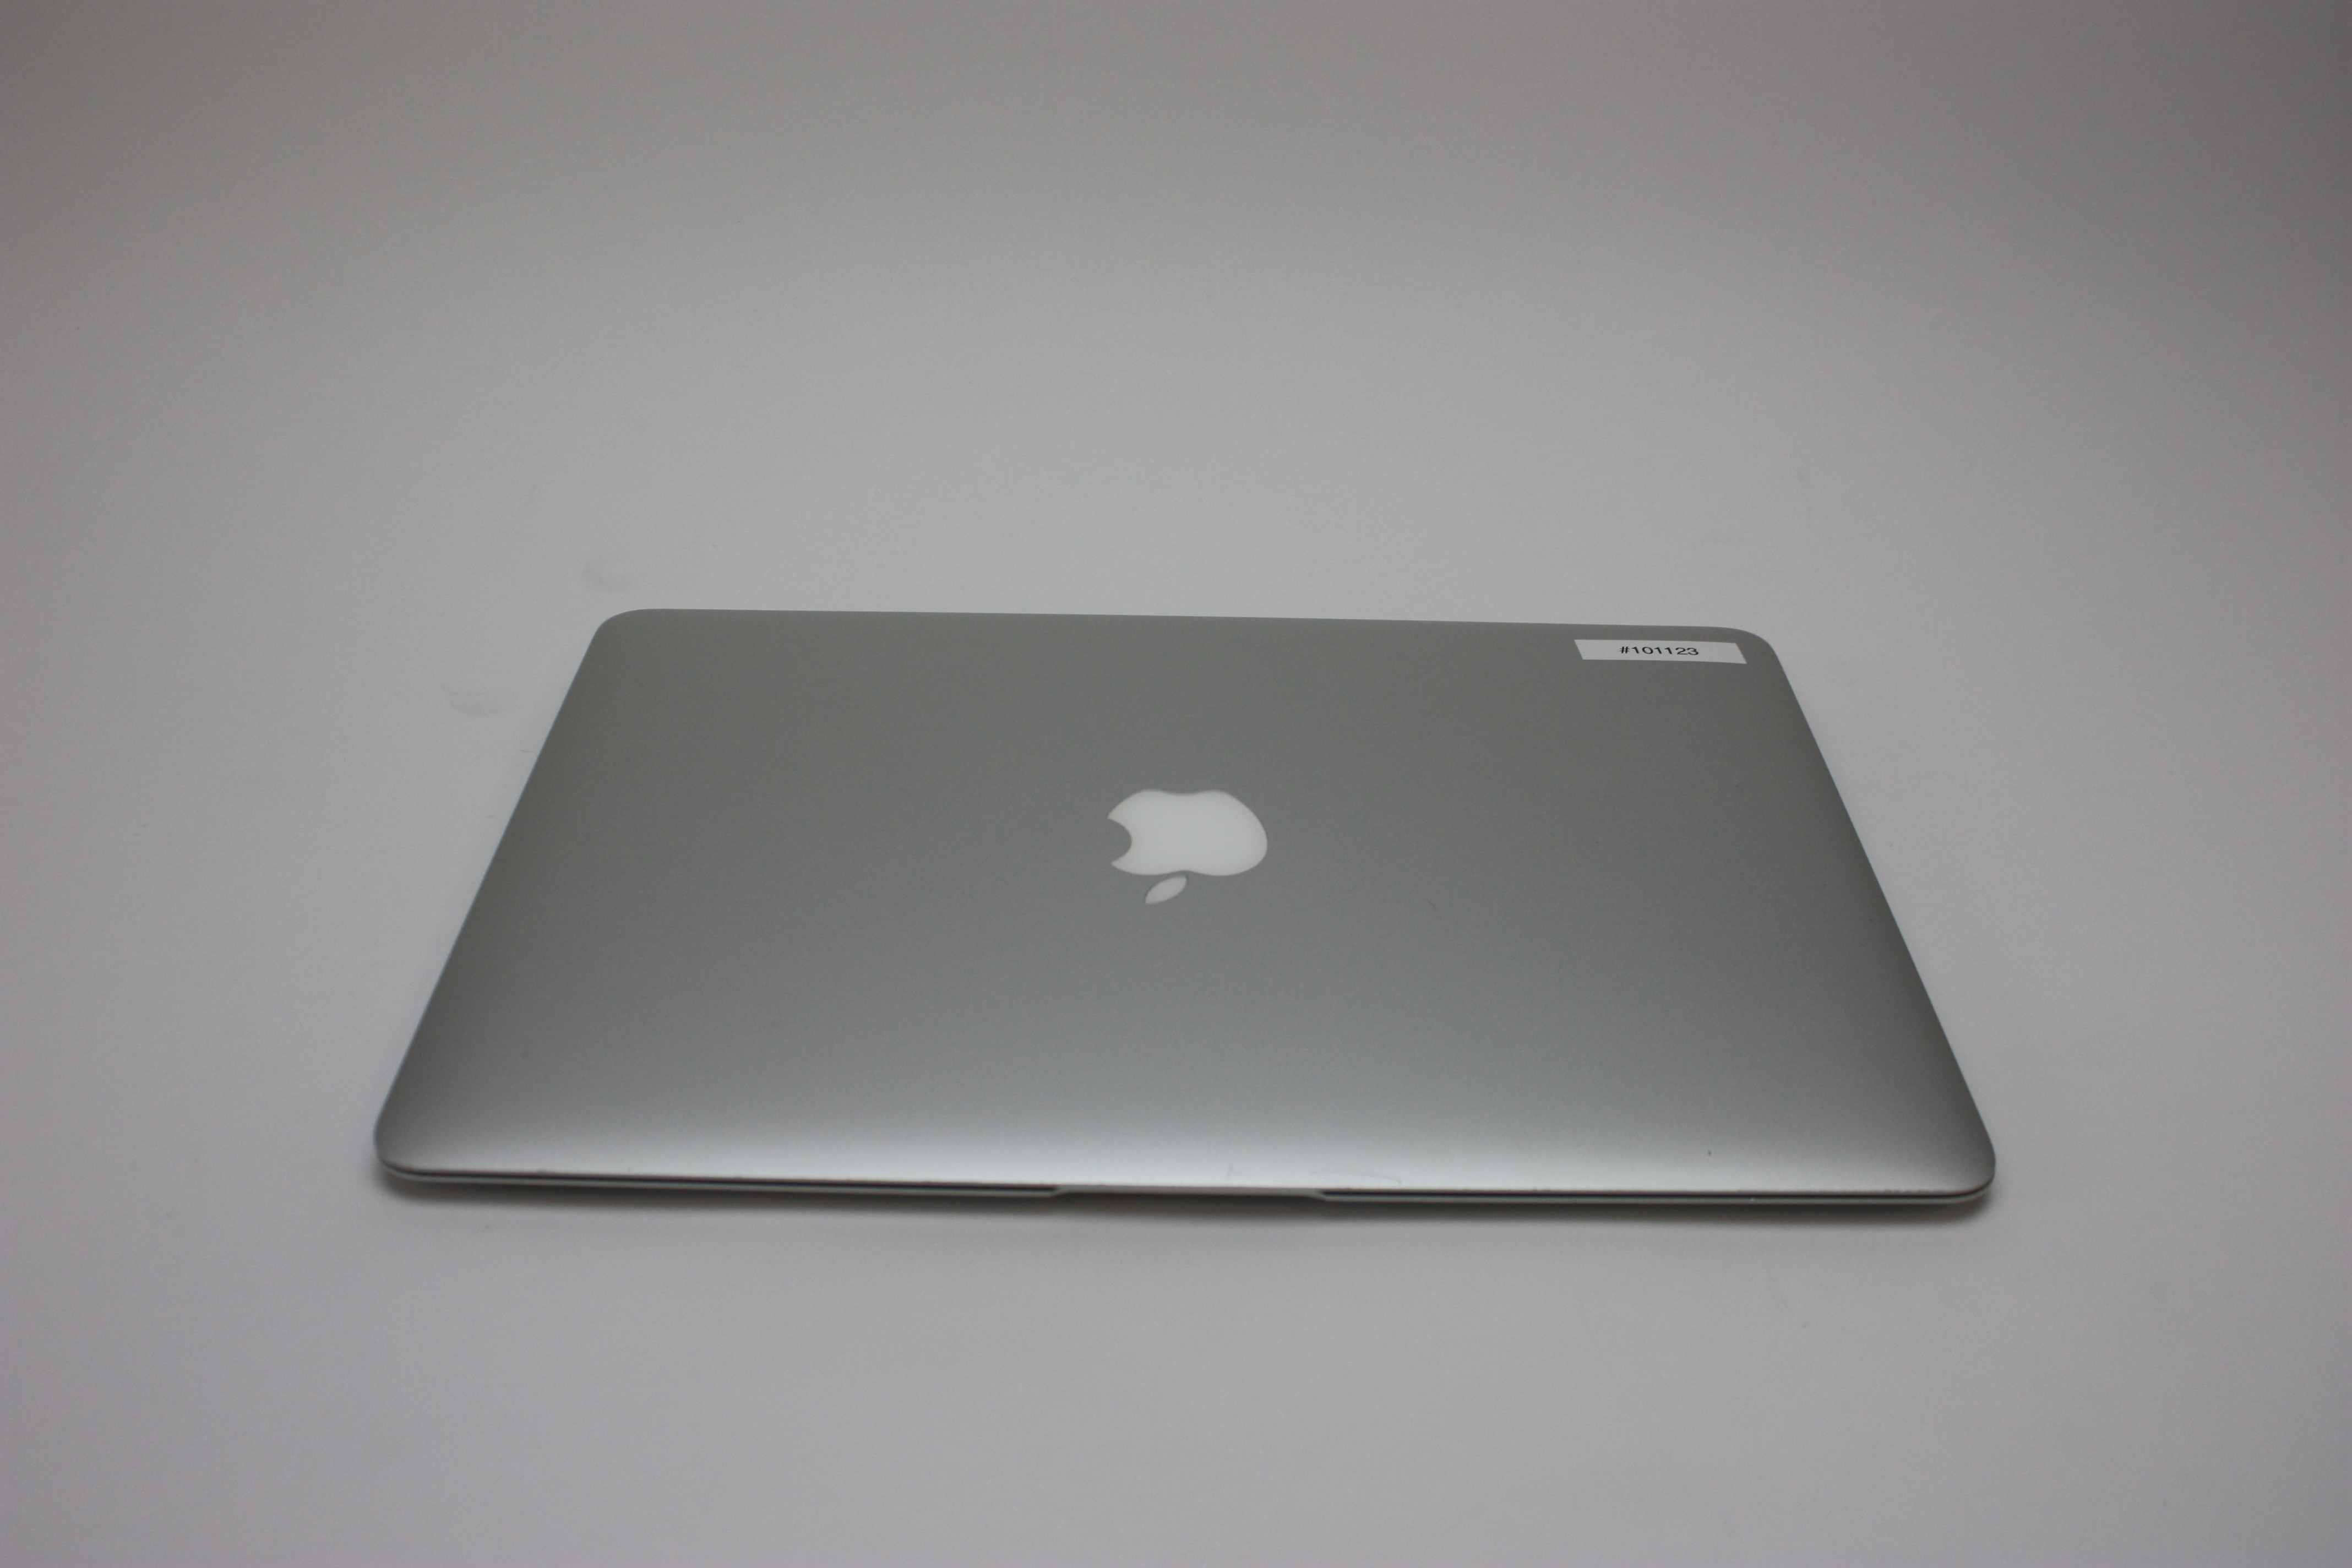 MacBook Air 13-inch, 1.4 GHz Intel Core i5, 4 GB 1600 MHz DDR3, 128 GB Flash Storage, Product age: 43 months, image 4